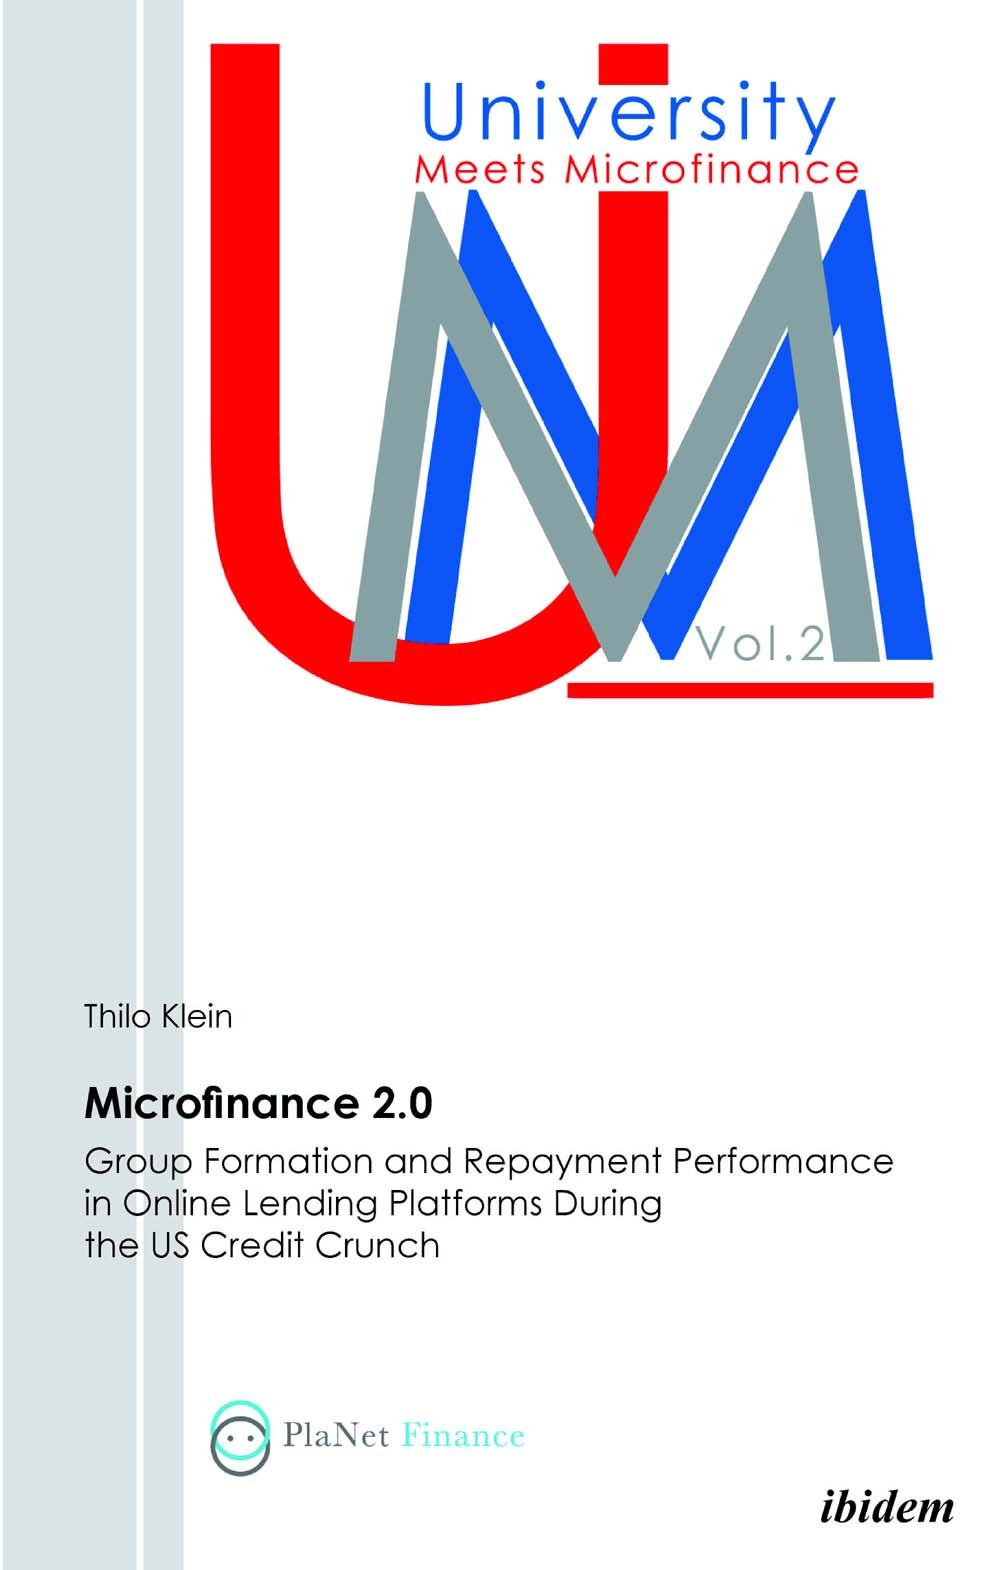 Microfinance 2.0 - Group Formation & Repayment Performance in Online Lending Platforms During the U.S. Credit Crunch